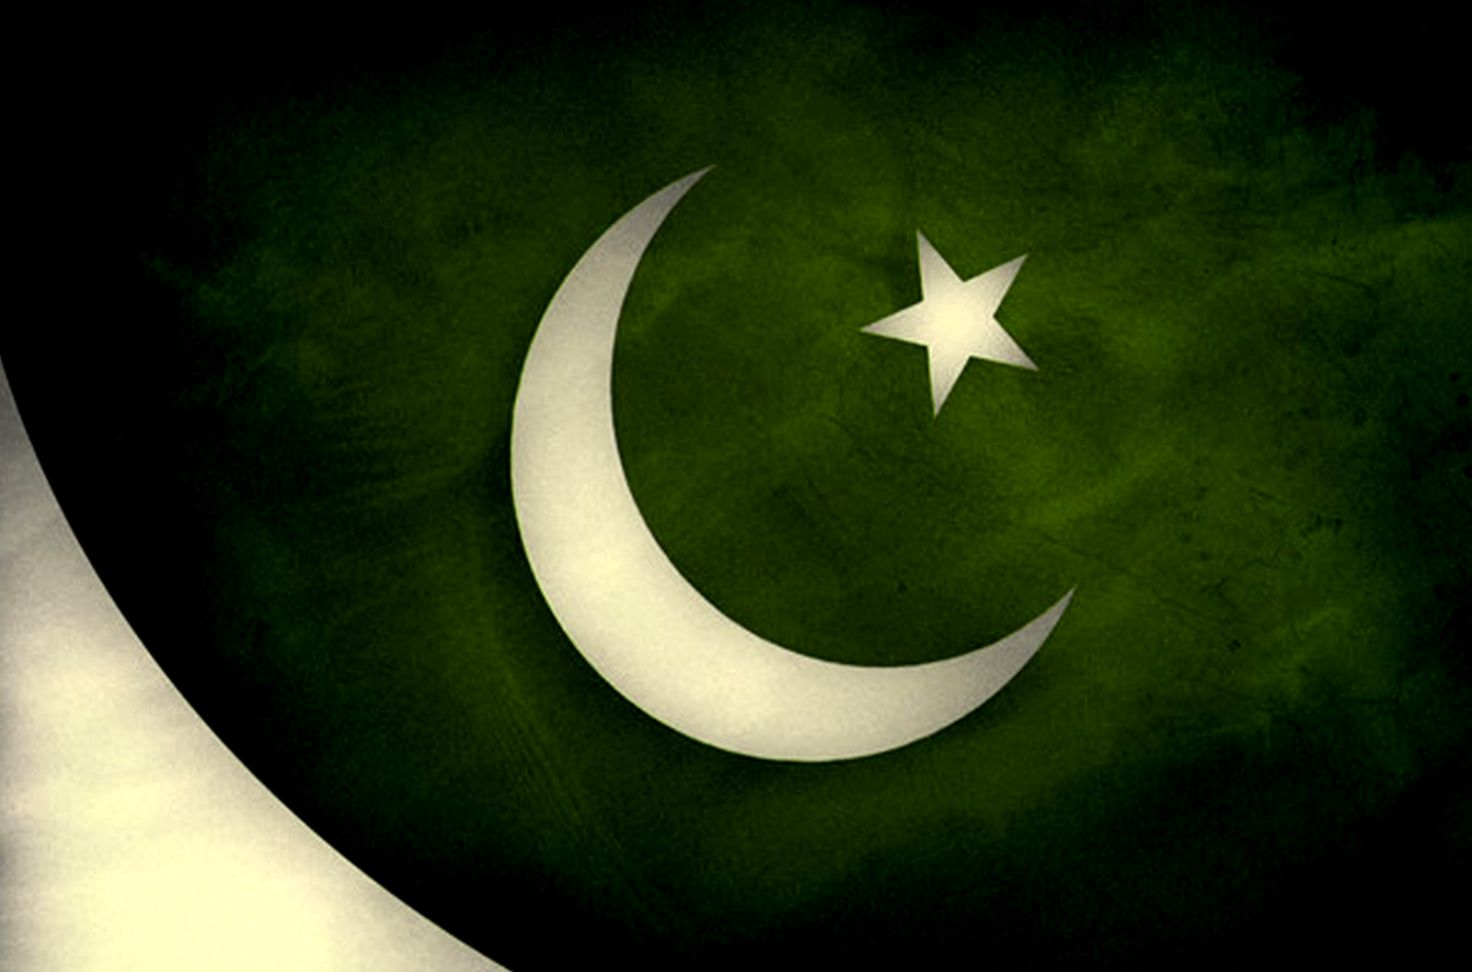 YEAR IN REVIEW: PAKISTAN IN 2019